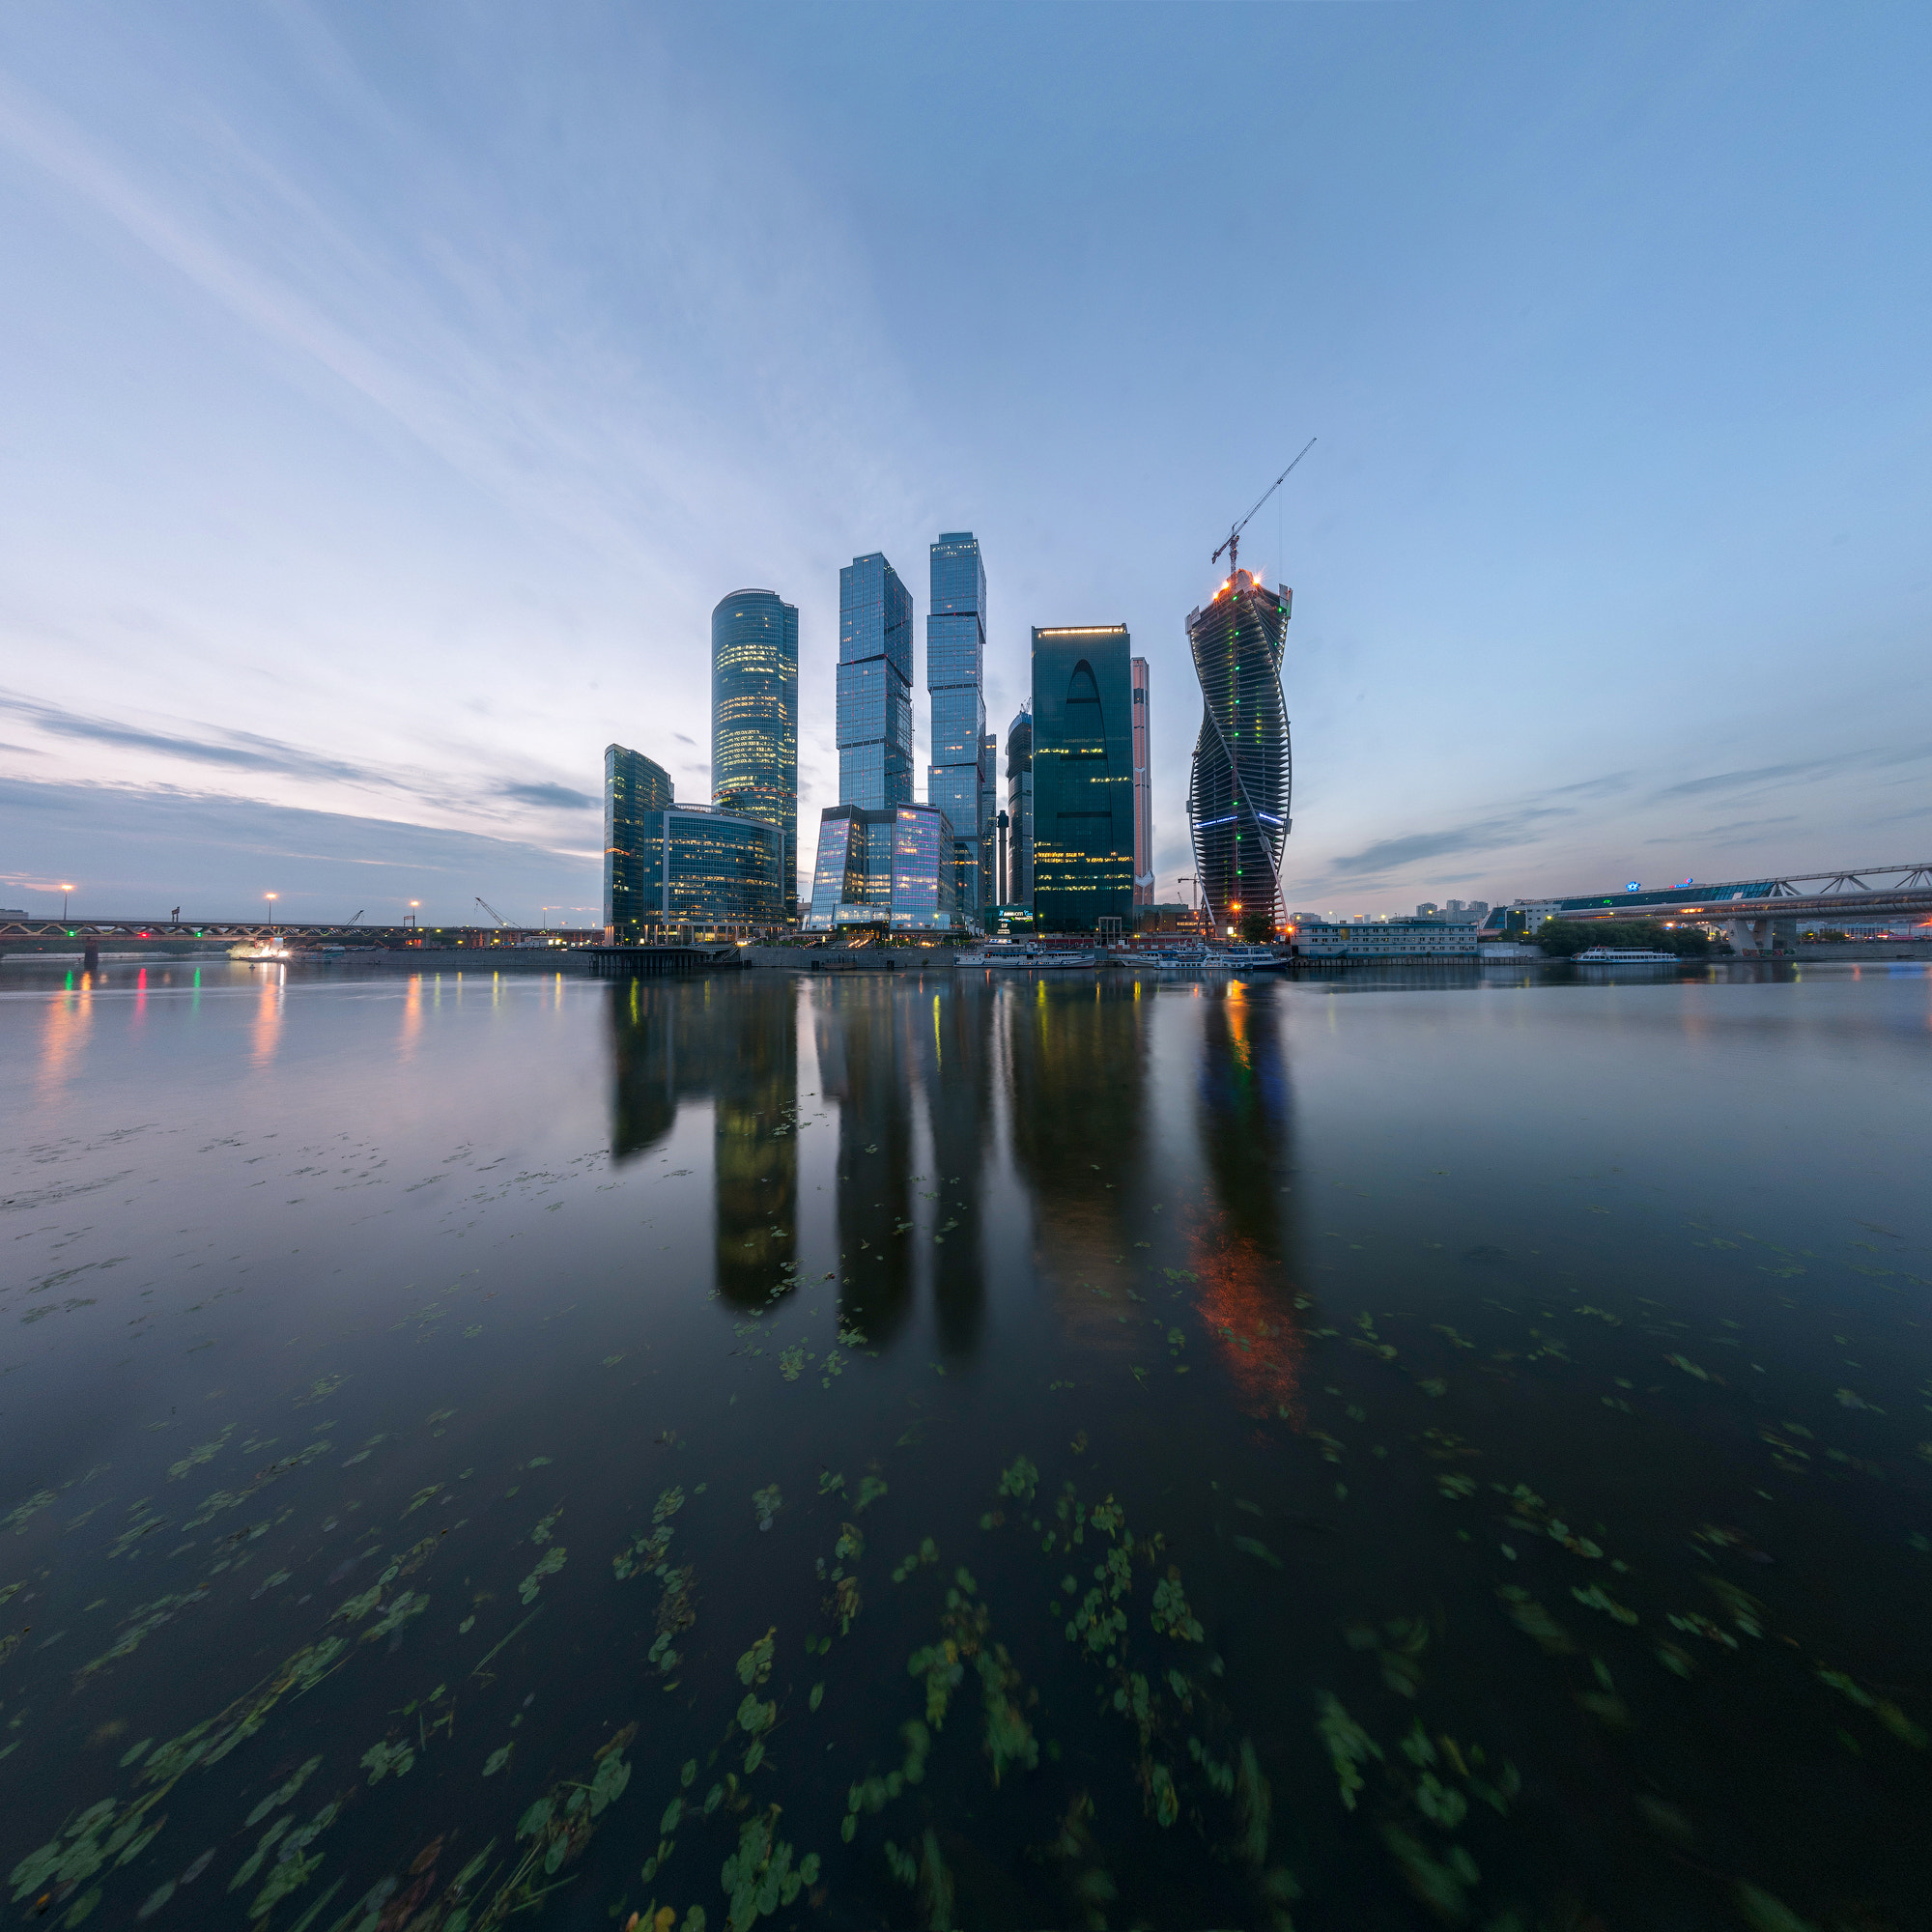 Photograph Moscow City by Alexei Zaripov on 500px